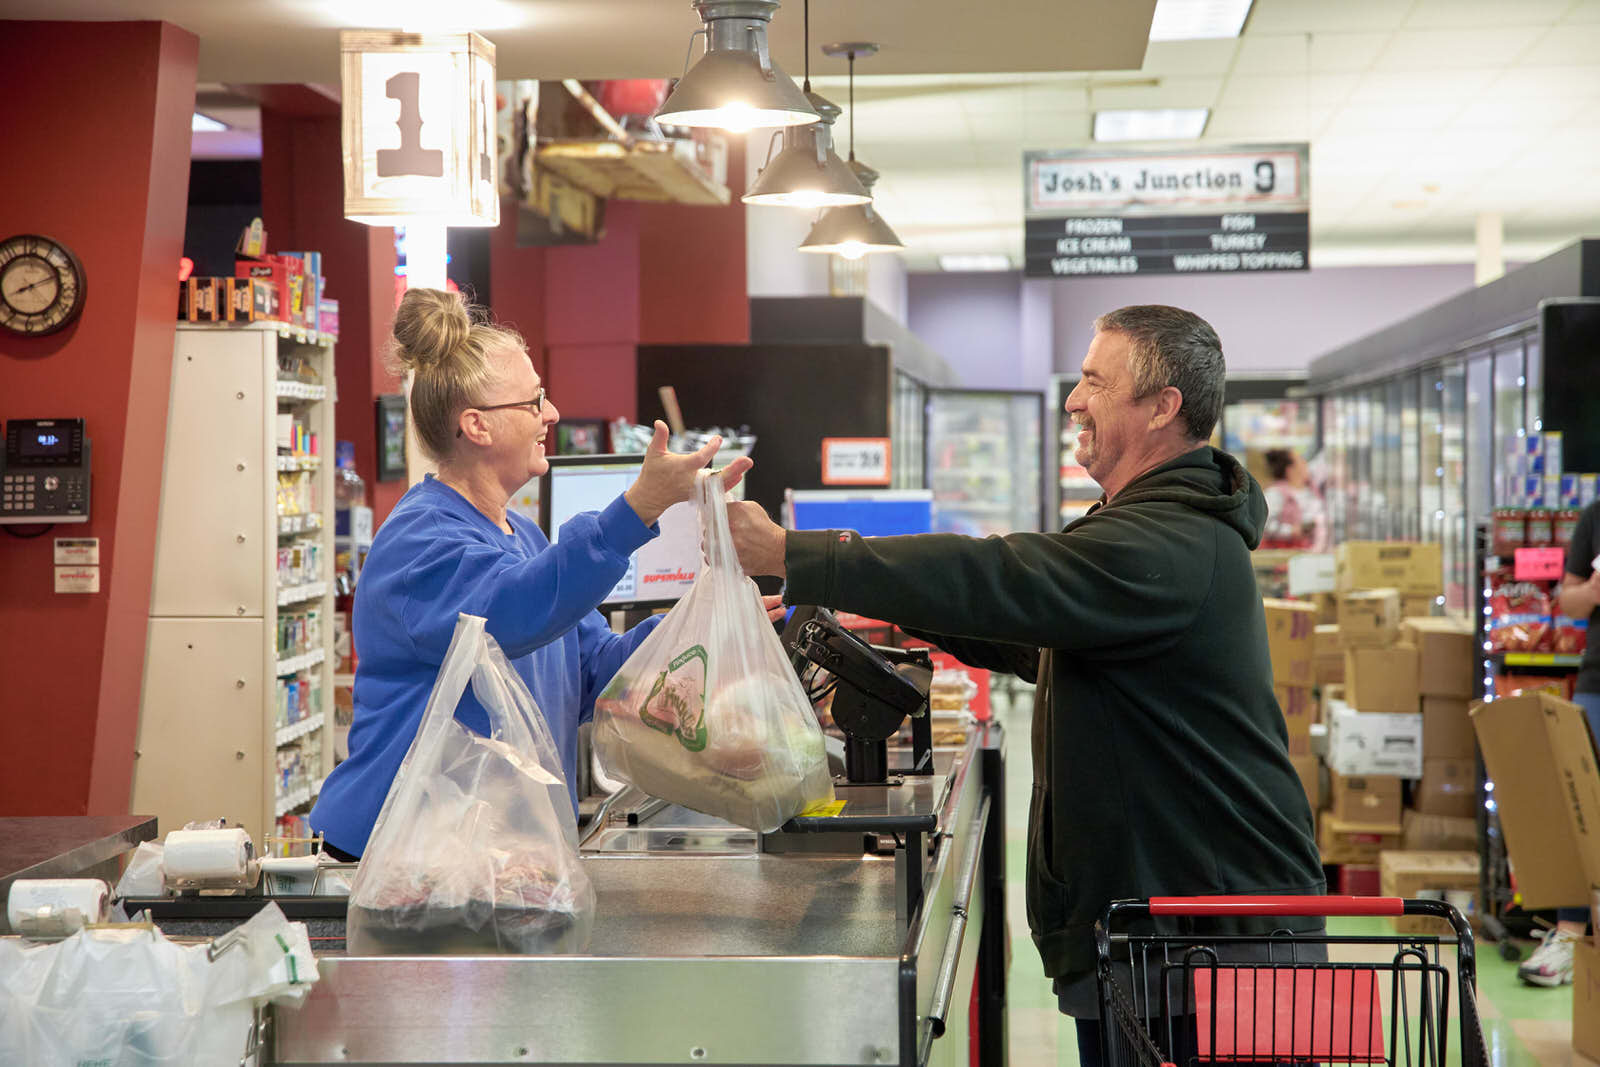 Supervalu employee handing groceries to customer at the checkout counter.